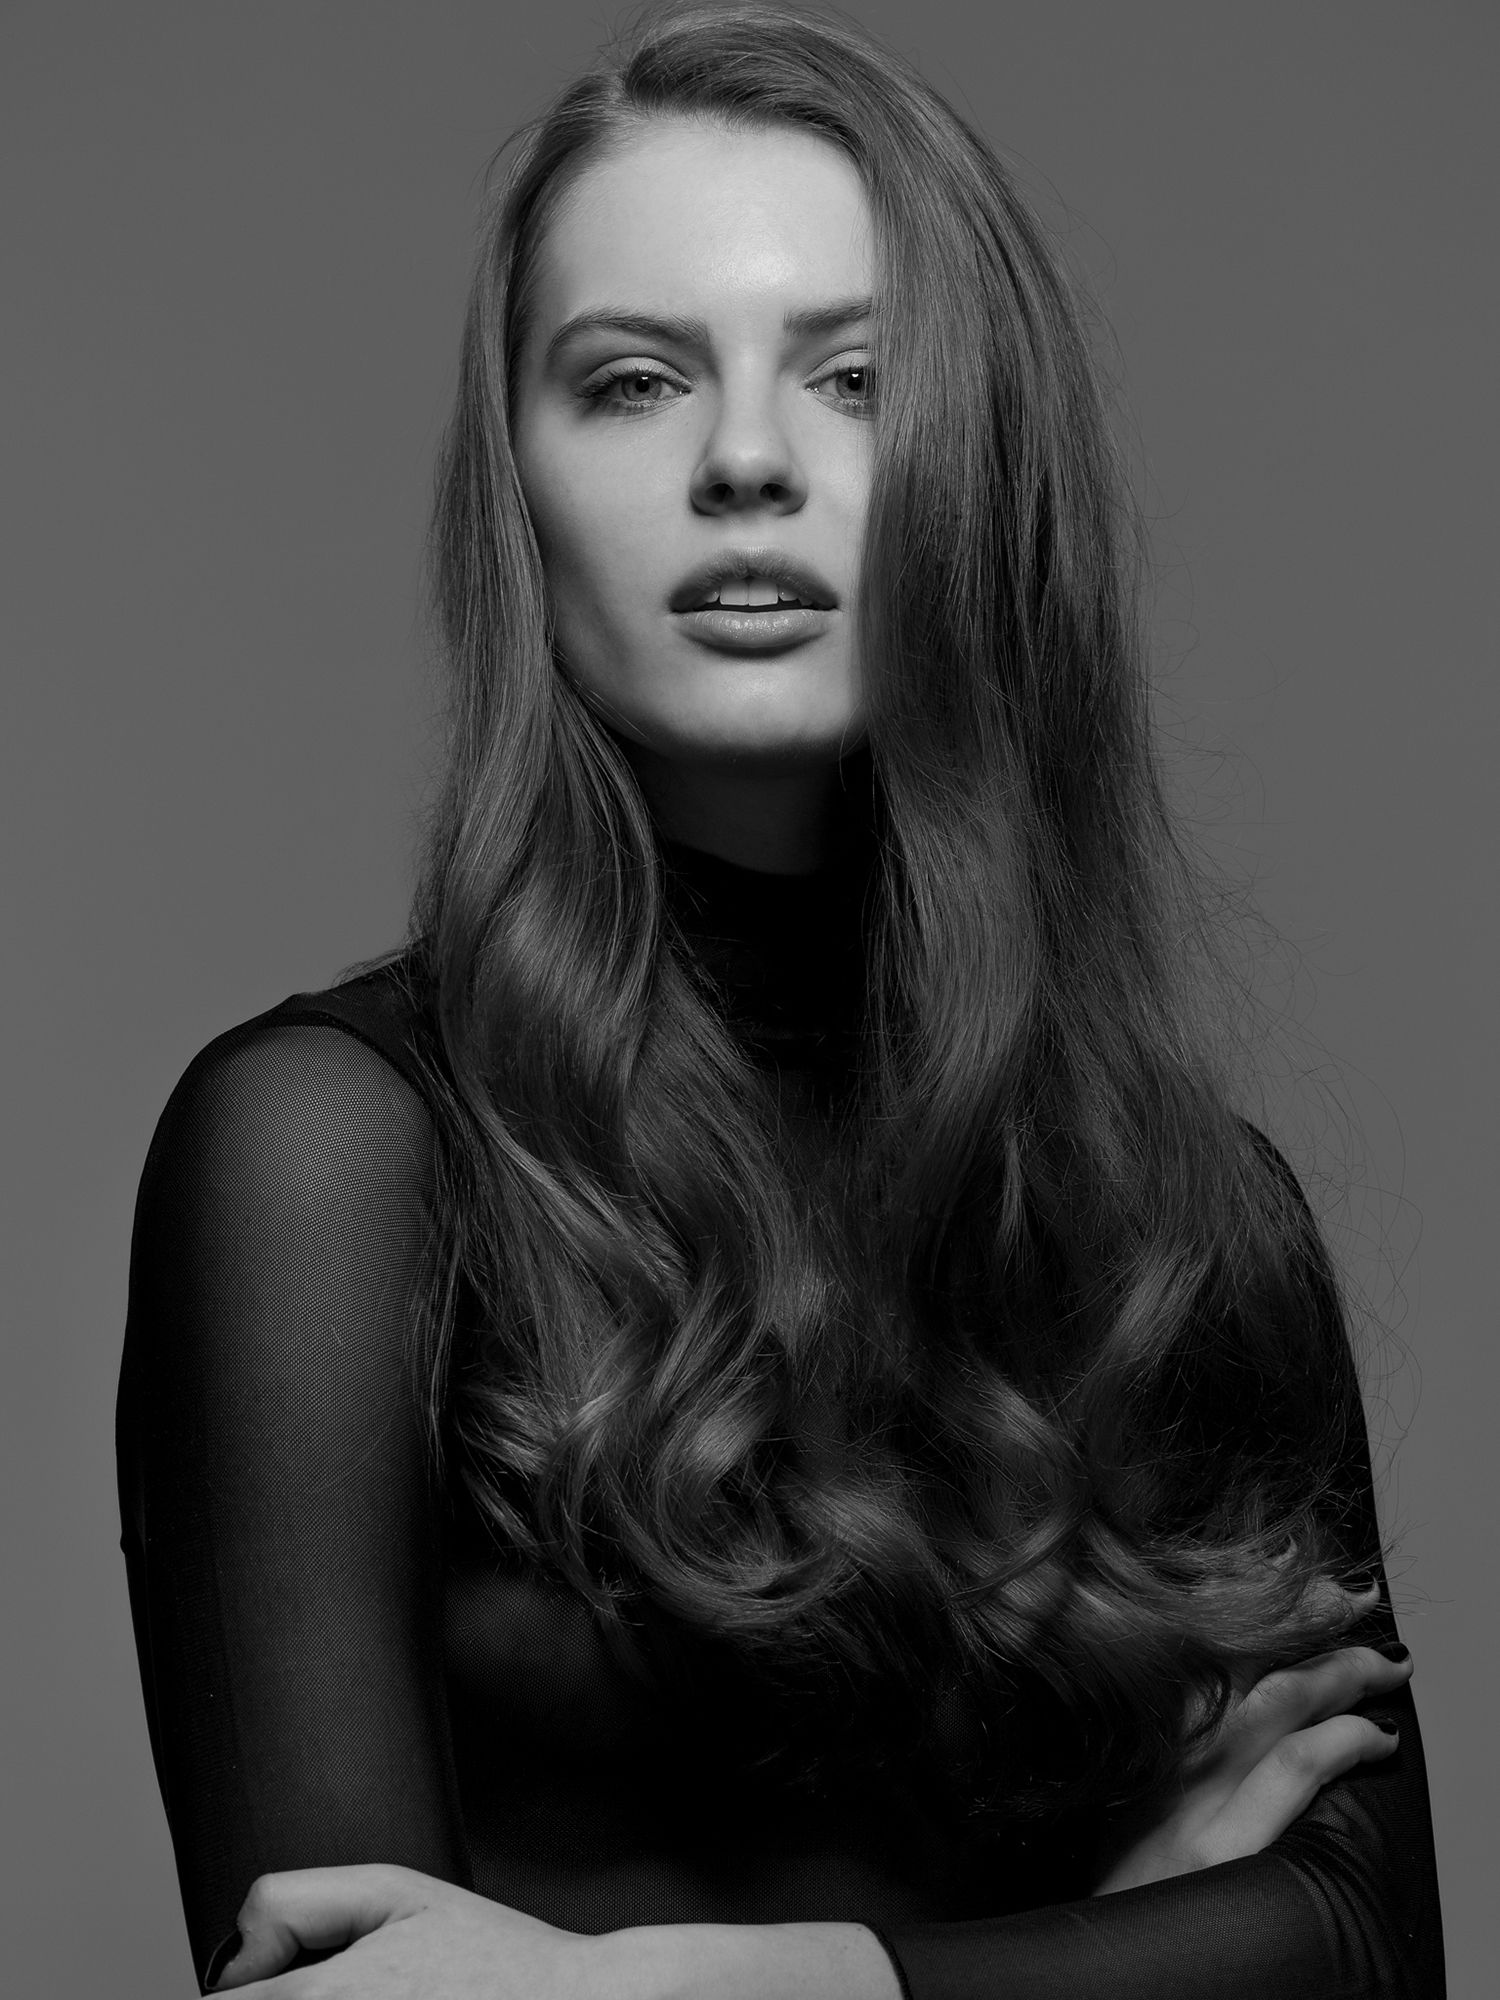 BRODYBOOKINGS: EMILIJA for RALF MICHALAK